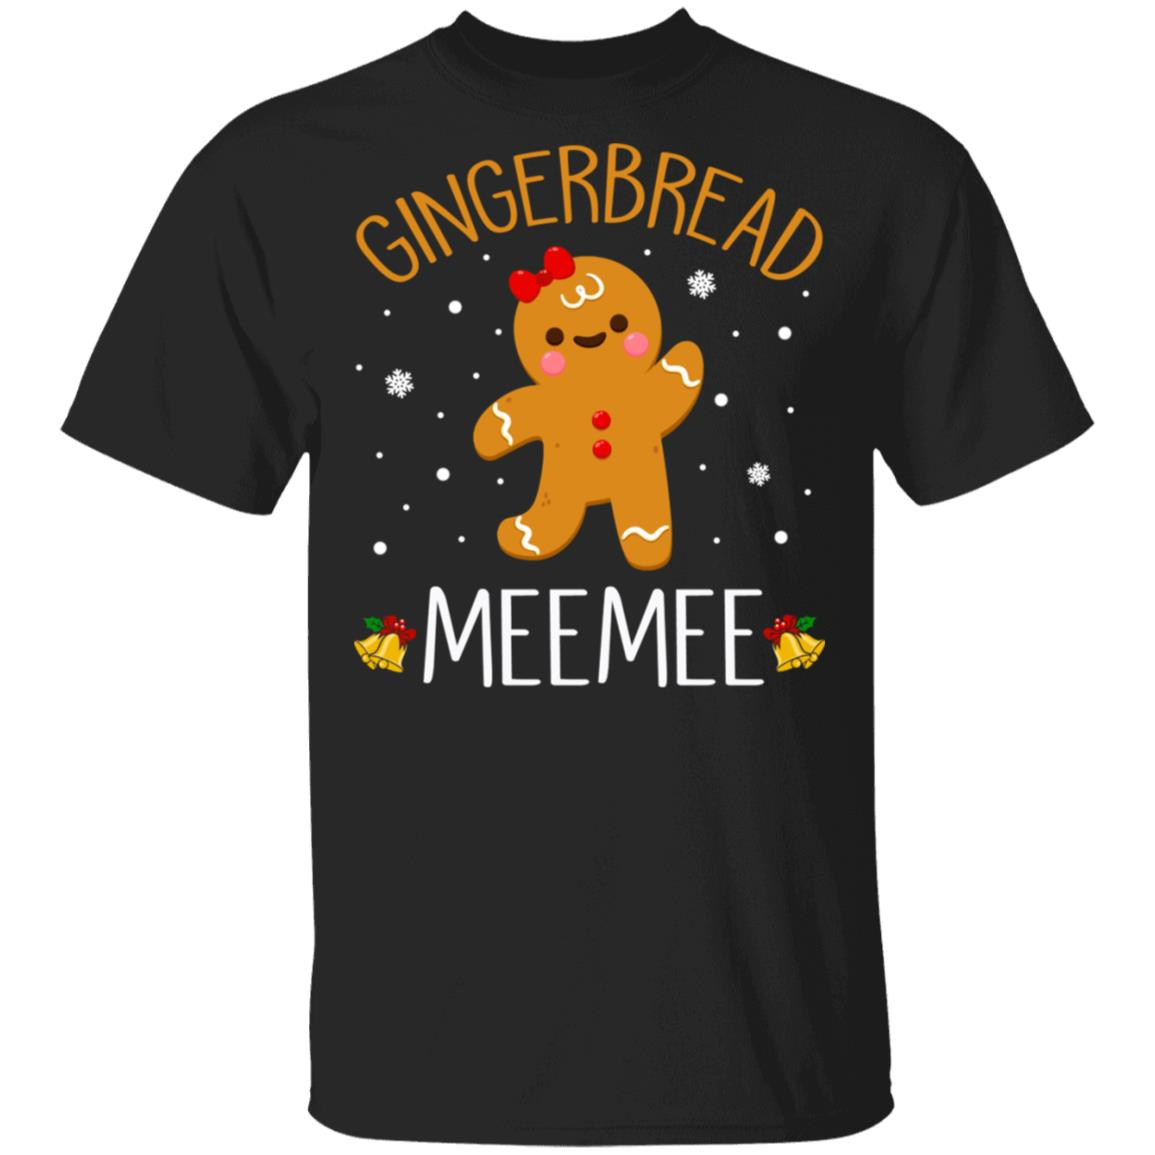 Xmas Gingerbread Men MeeMee Christmas Family Unisex Short Sleeve